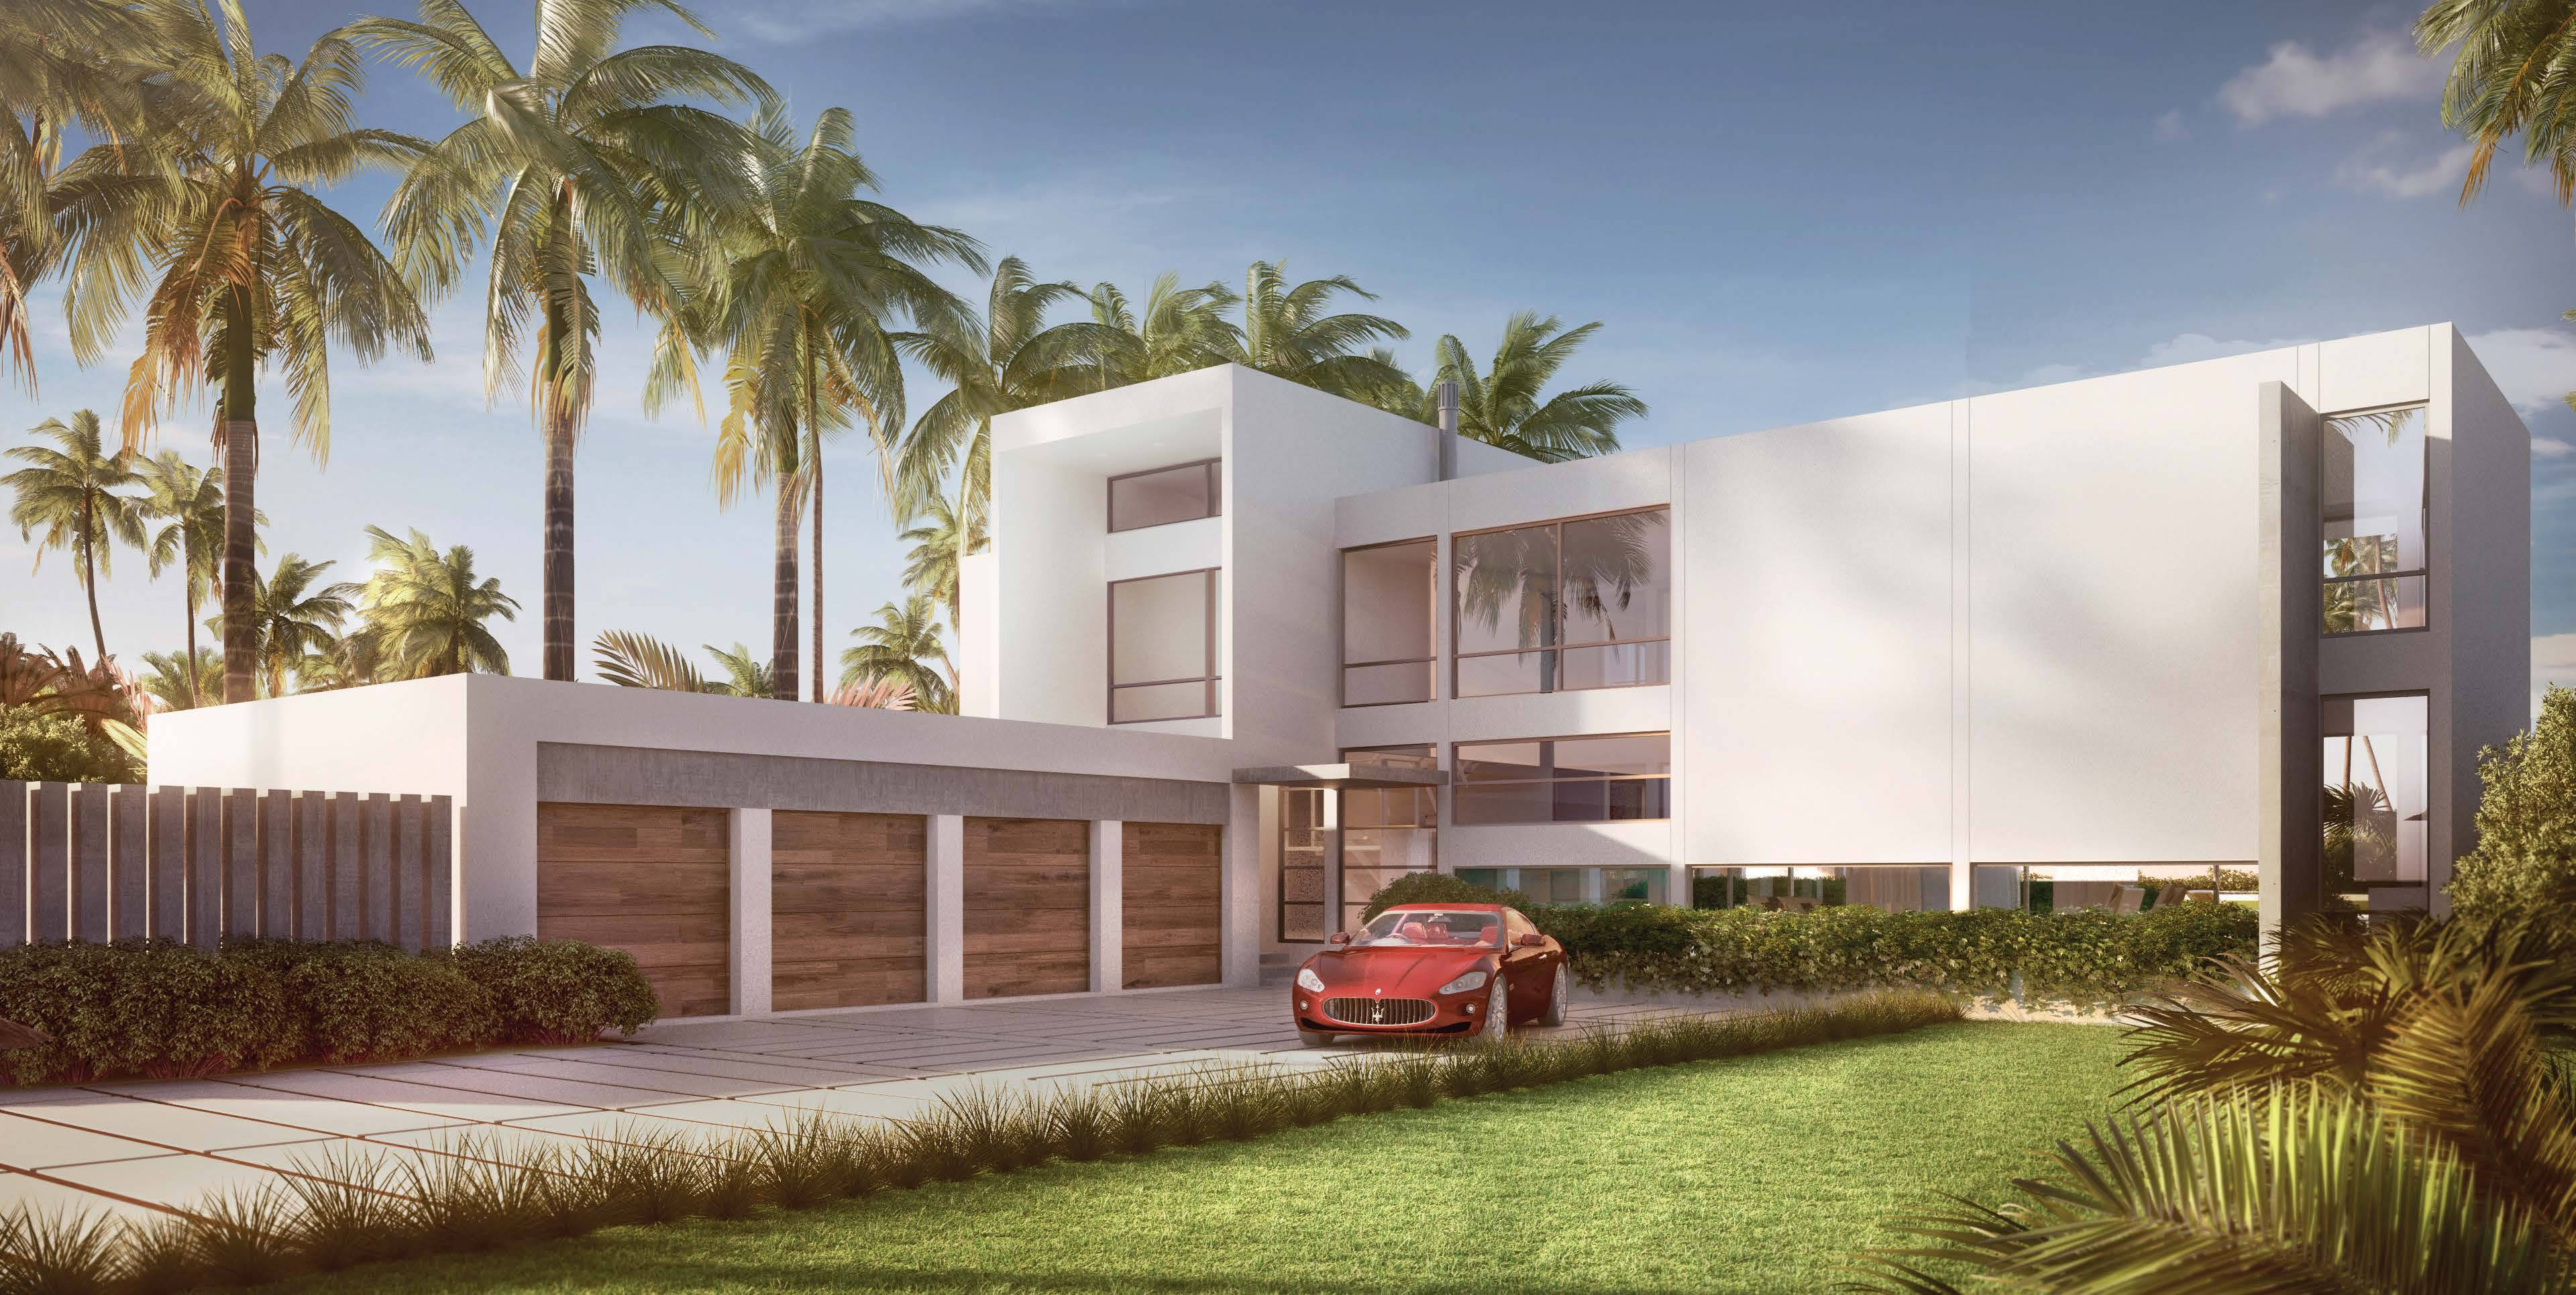 New construction in weston fl for Florida modern homes